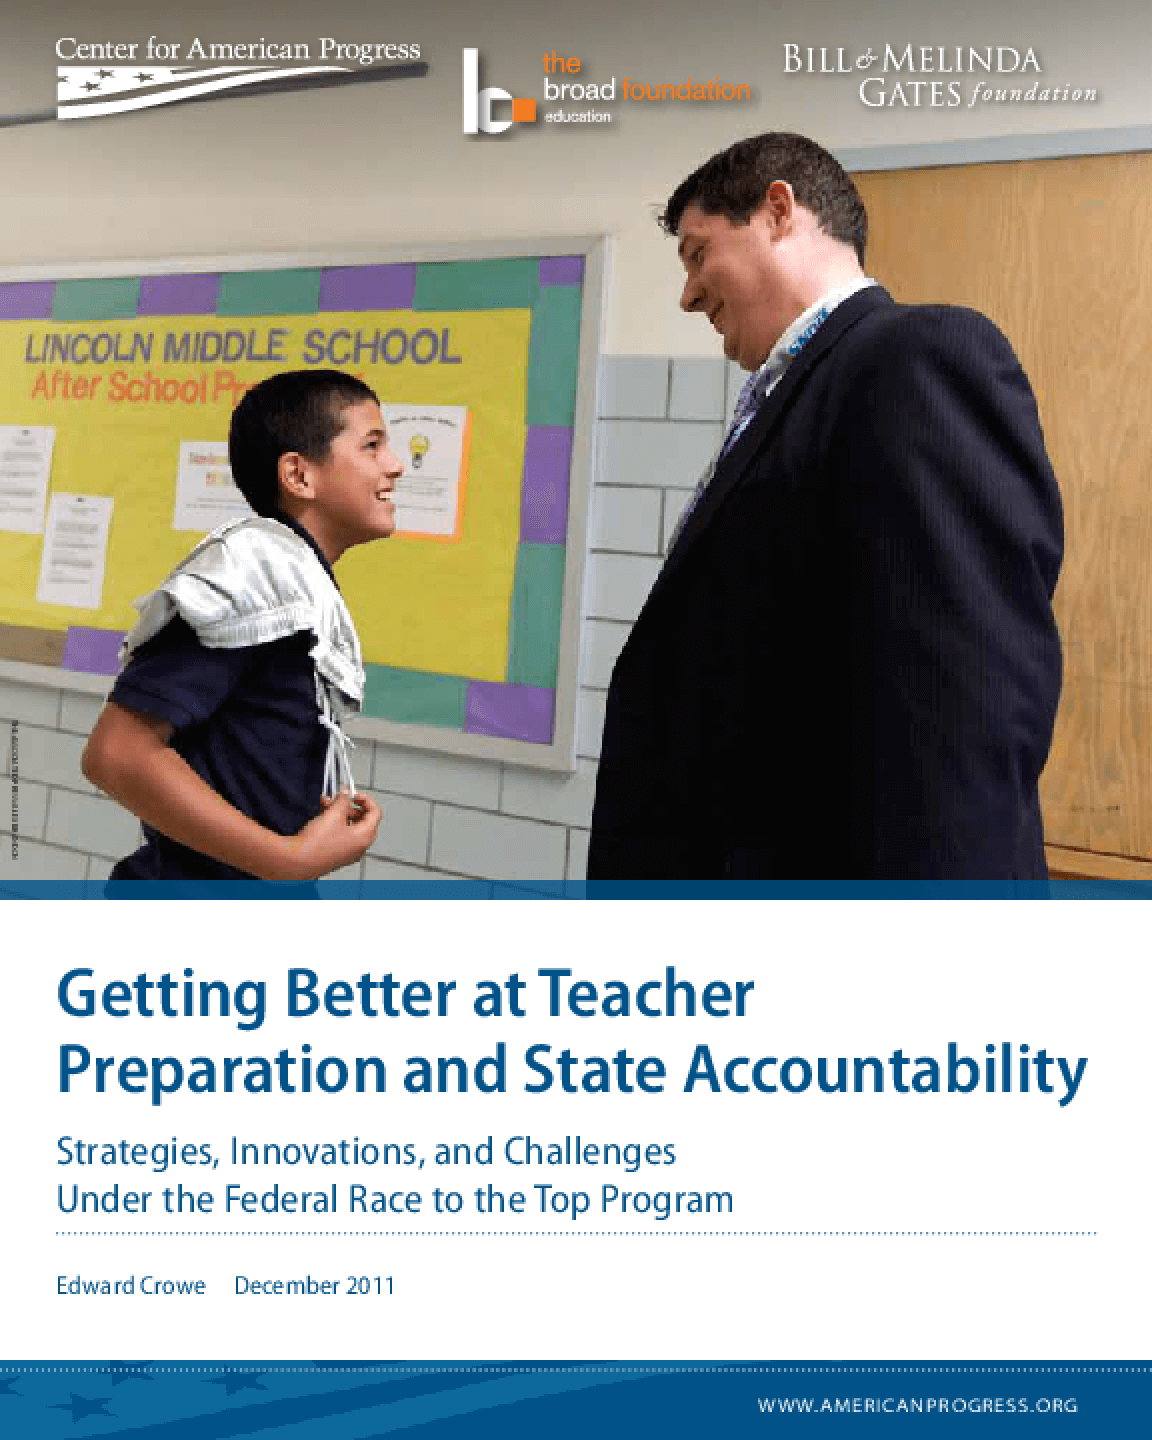 Getting Better at Teacher Preparation and State Accountability